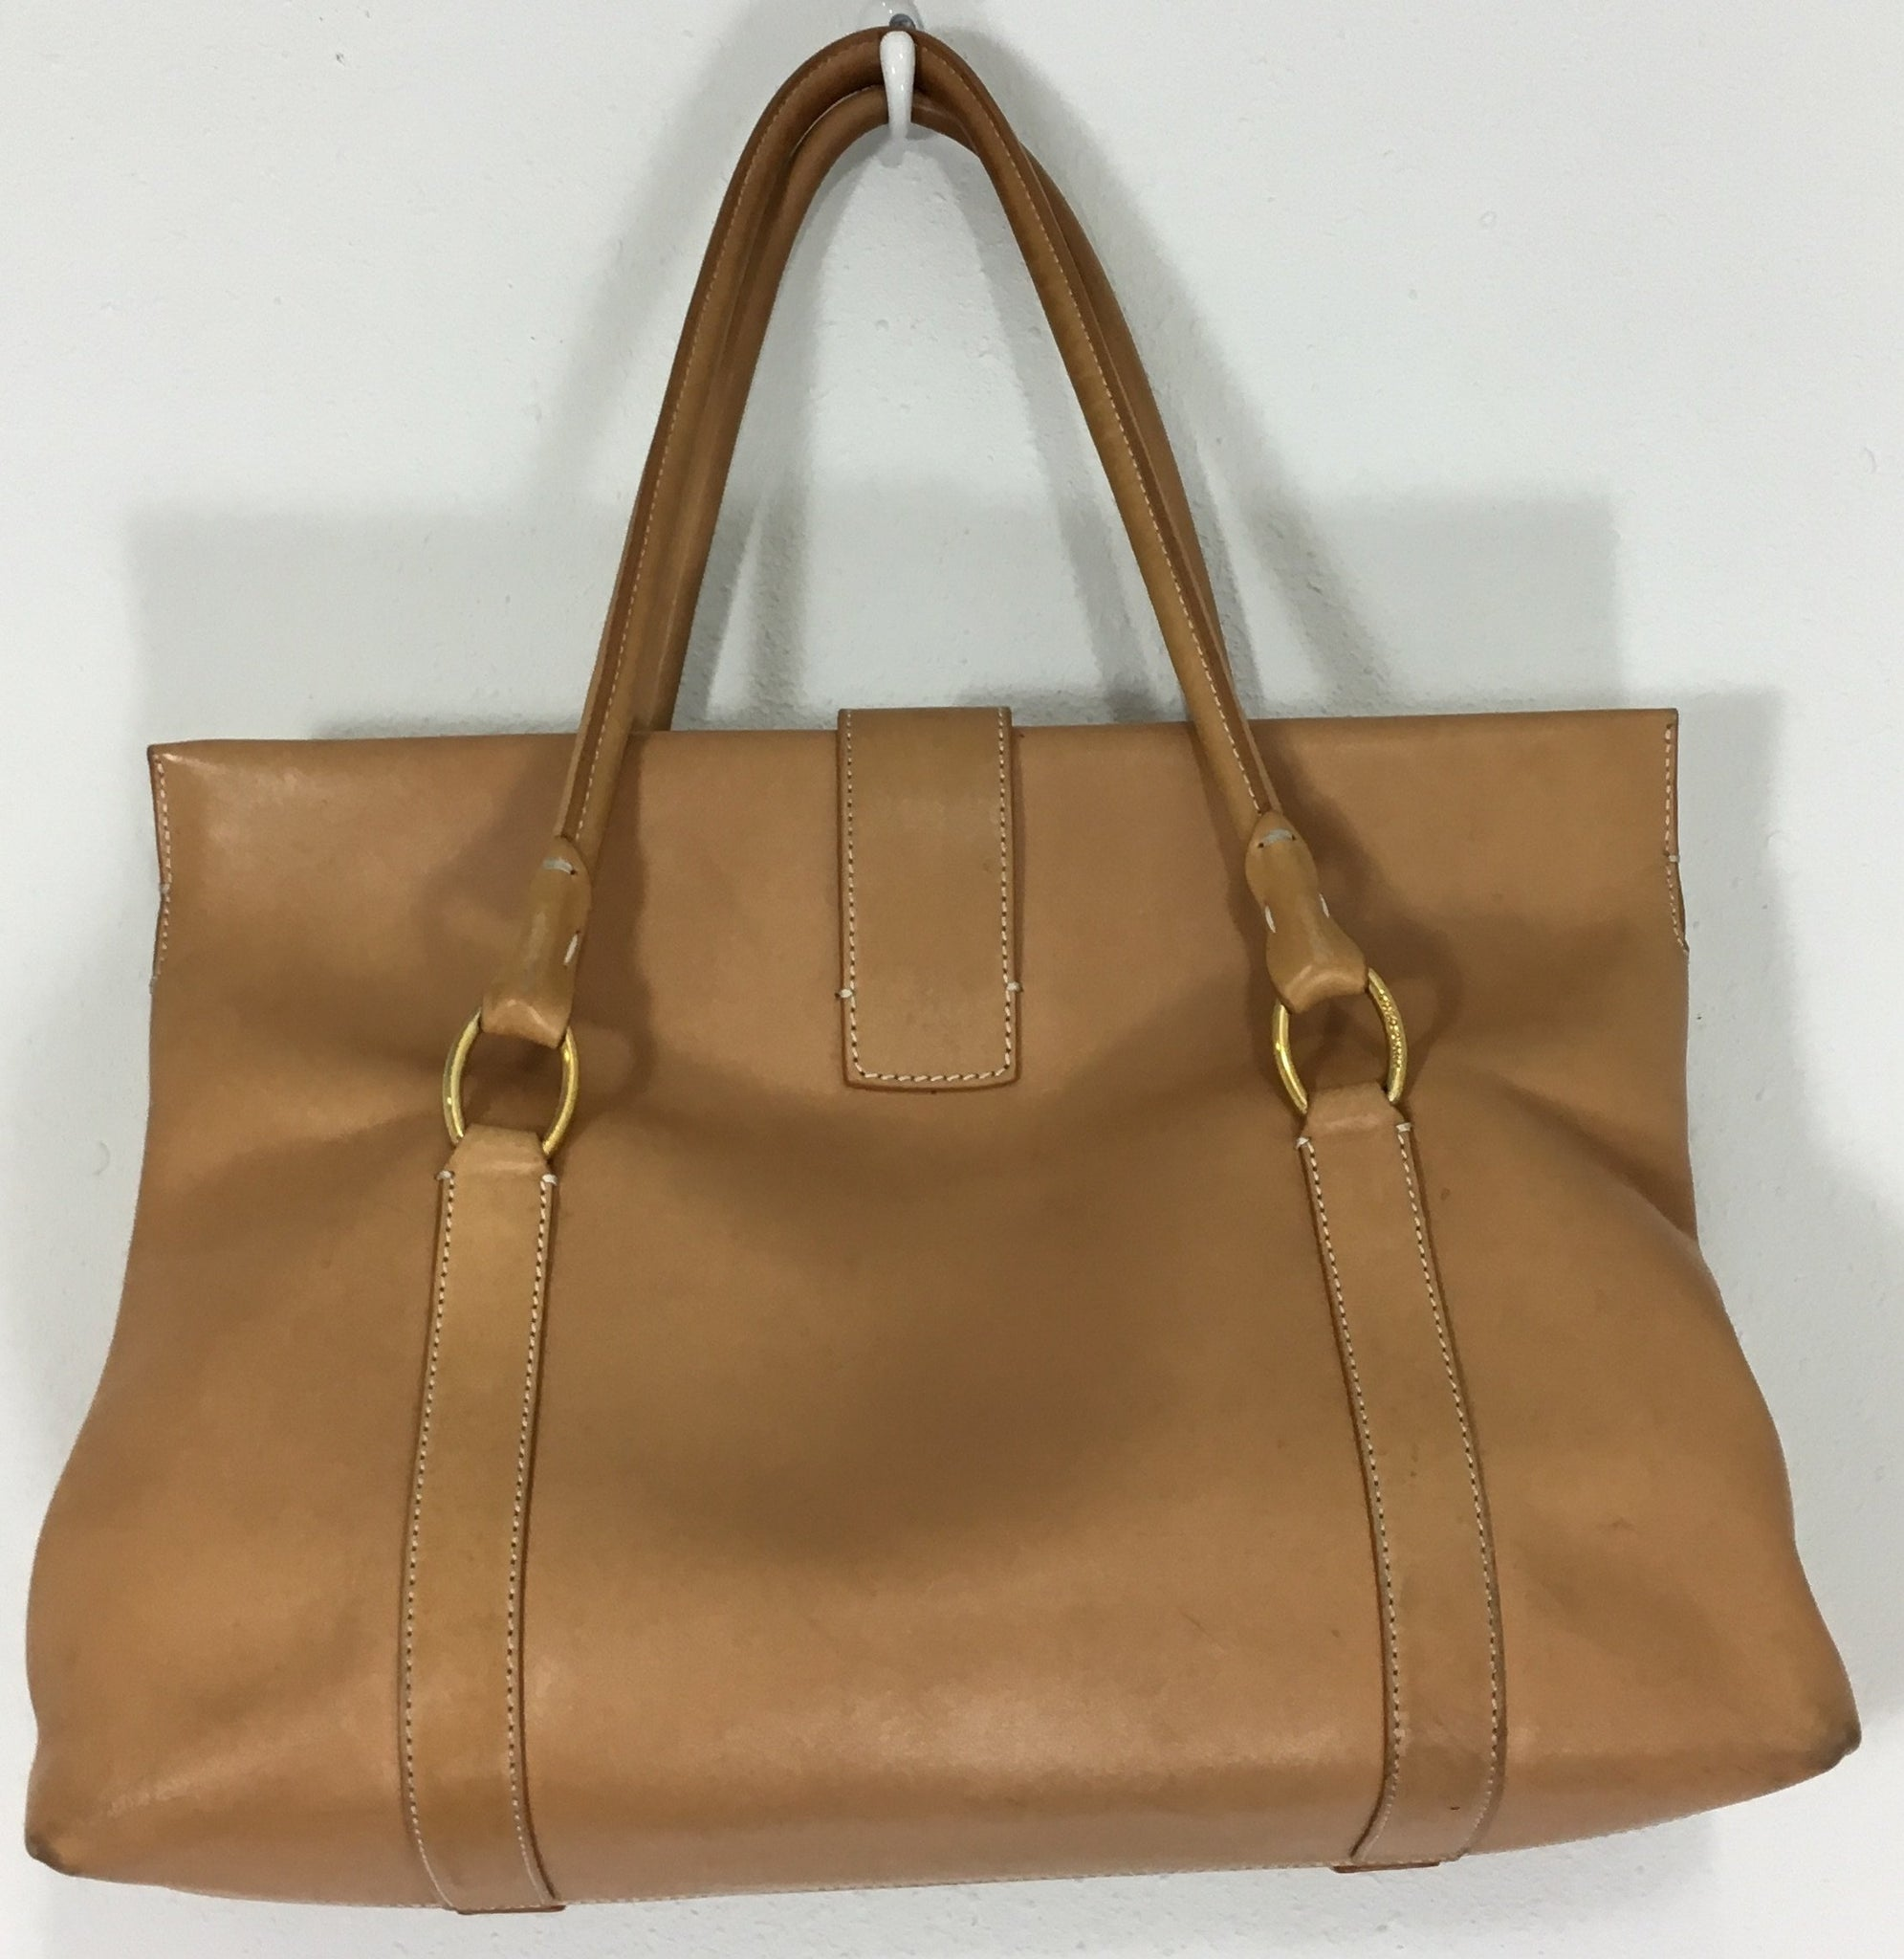 Vintage Loro Piana Handbag, SOLD